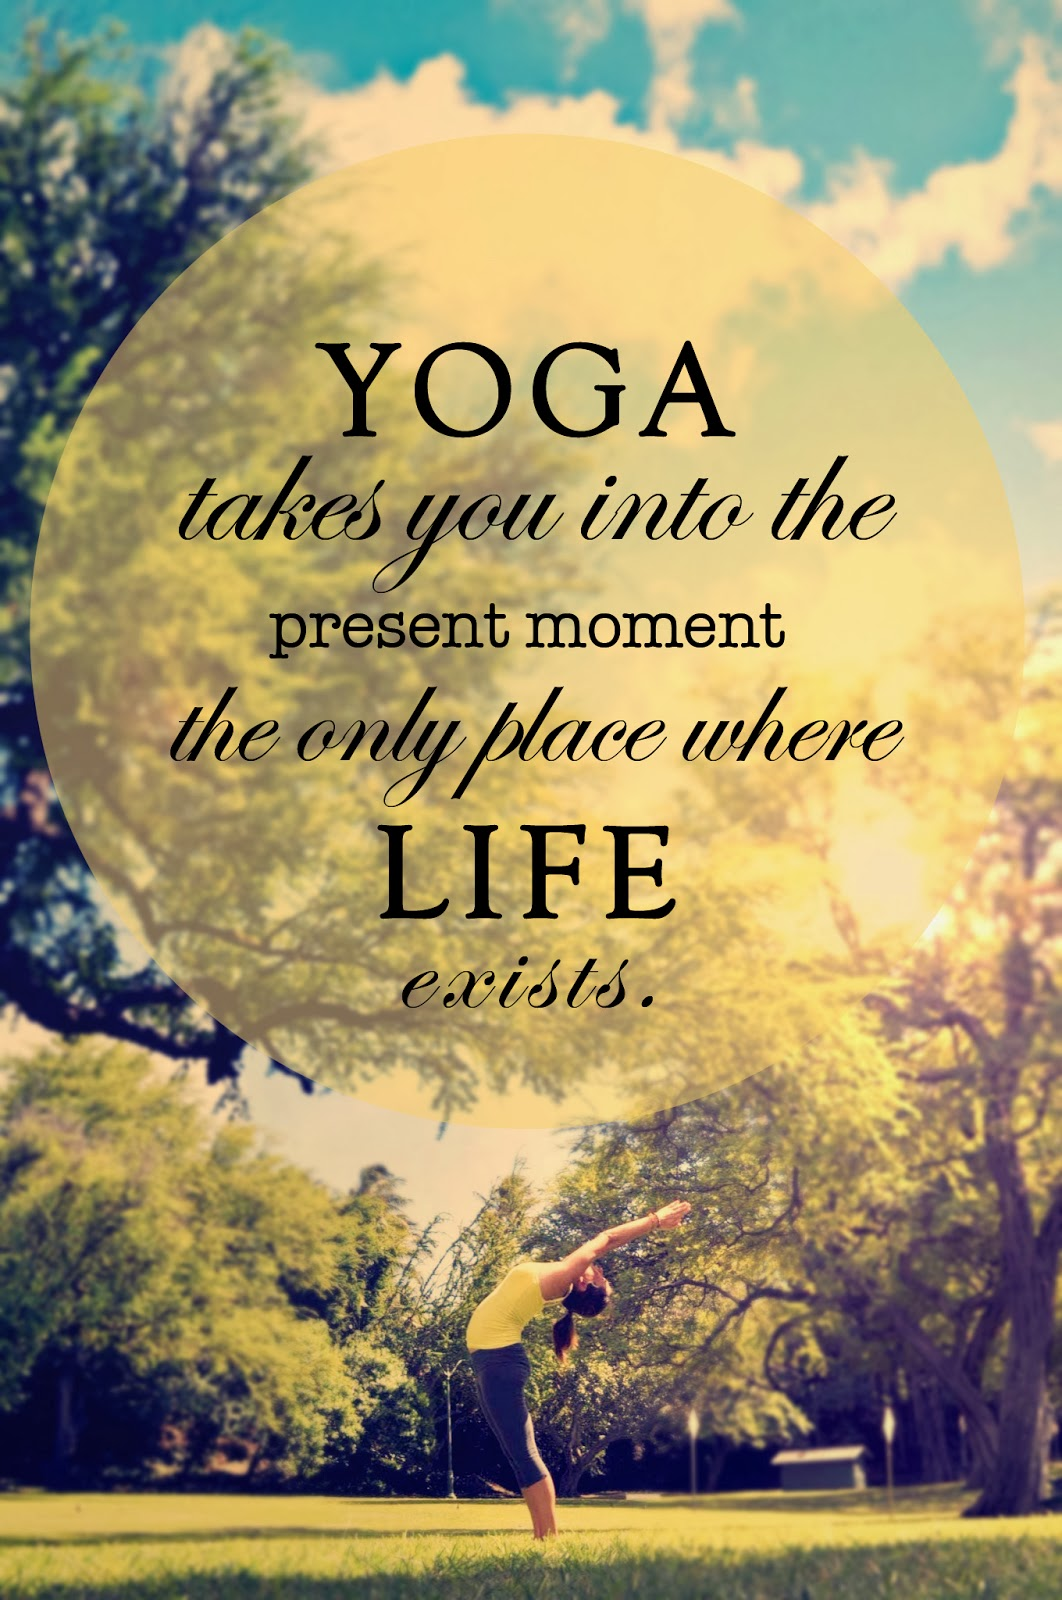 Quotes About Love Yoga : Thanks Lululemon East Coast for the opportunity, and for letting us ...